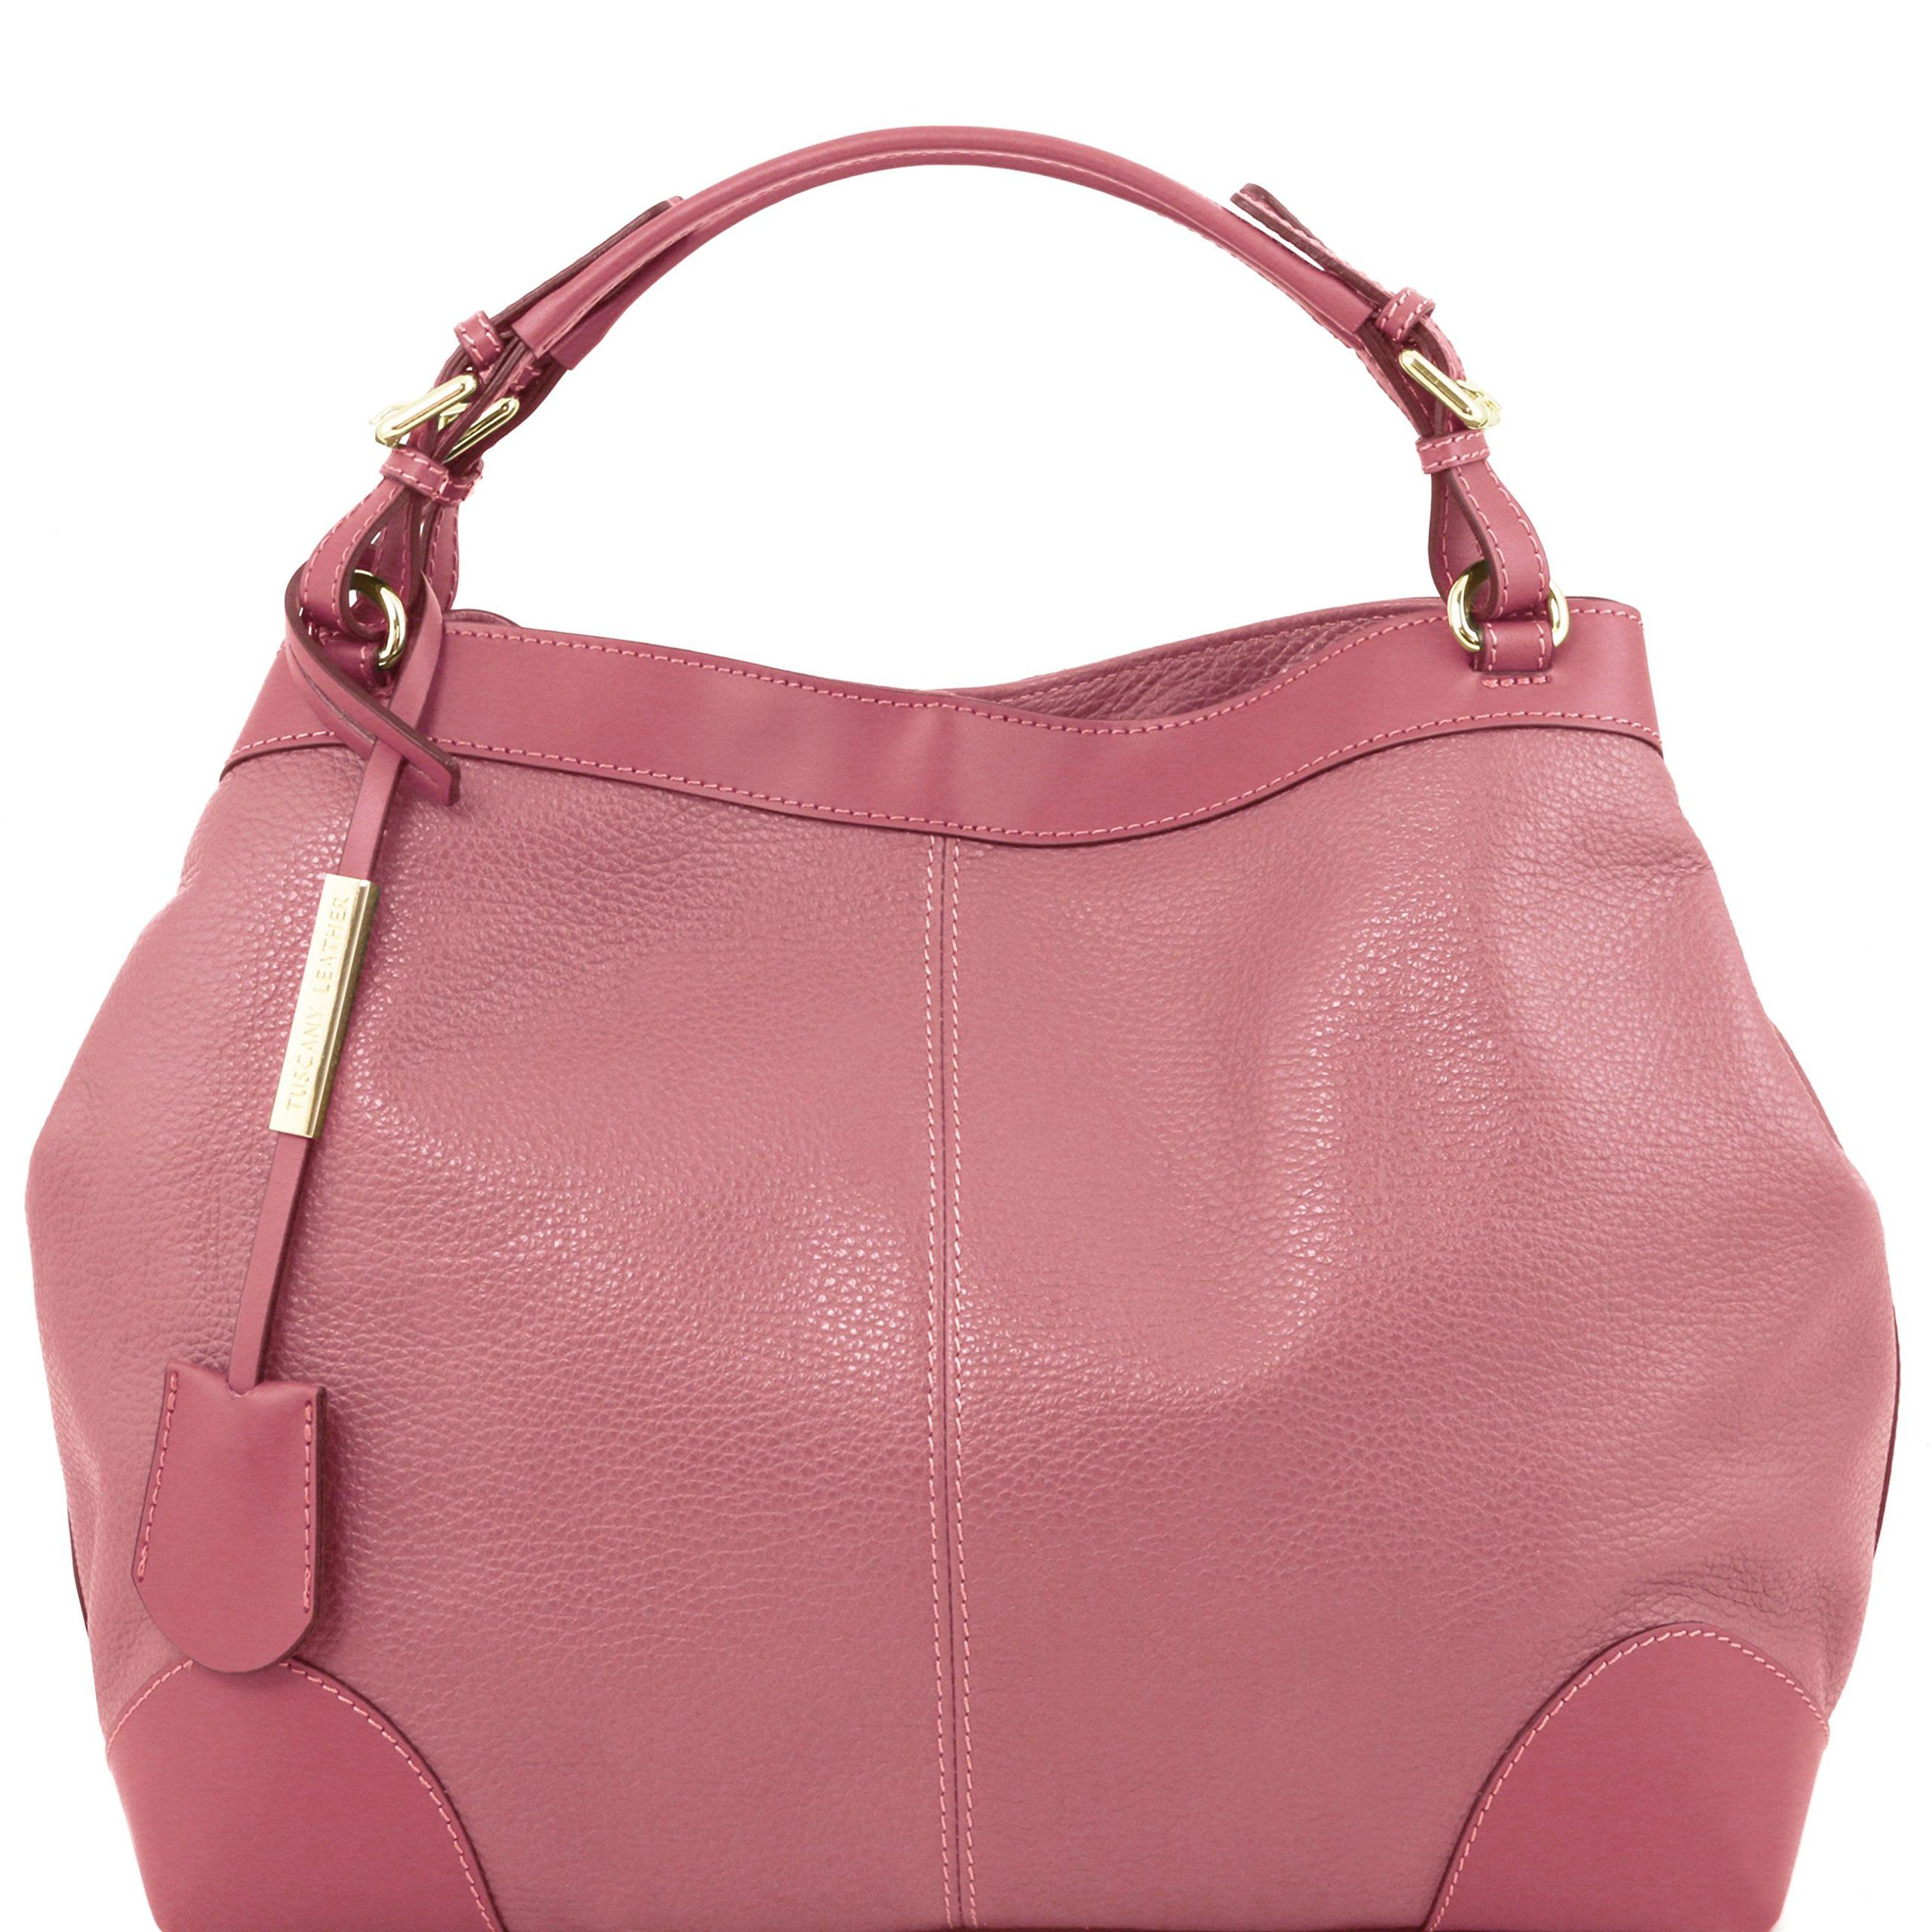 5d178e79a726 Tuscany Leather Ambrosia - Soft leather bag with shoulder strap Dusty Rose Leather  handbags